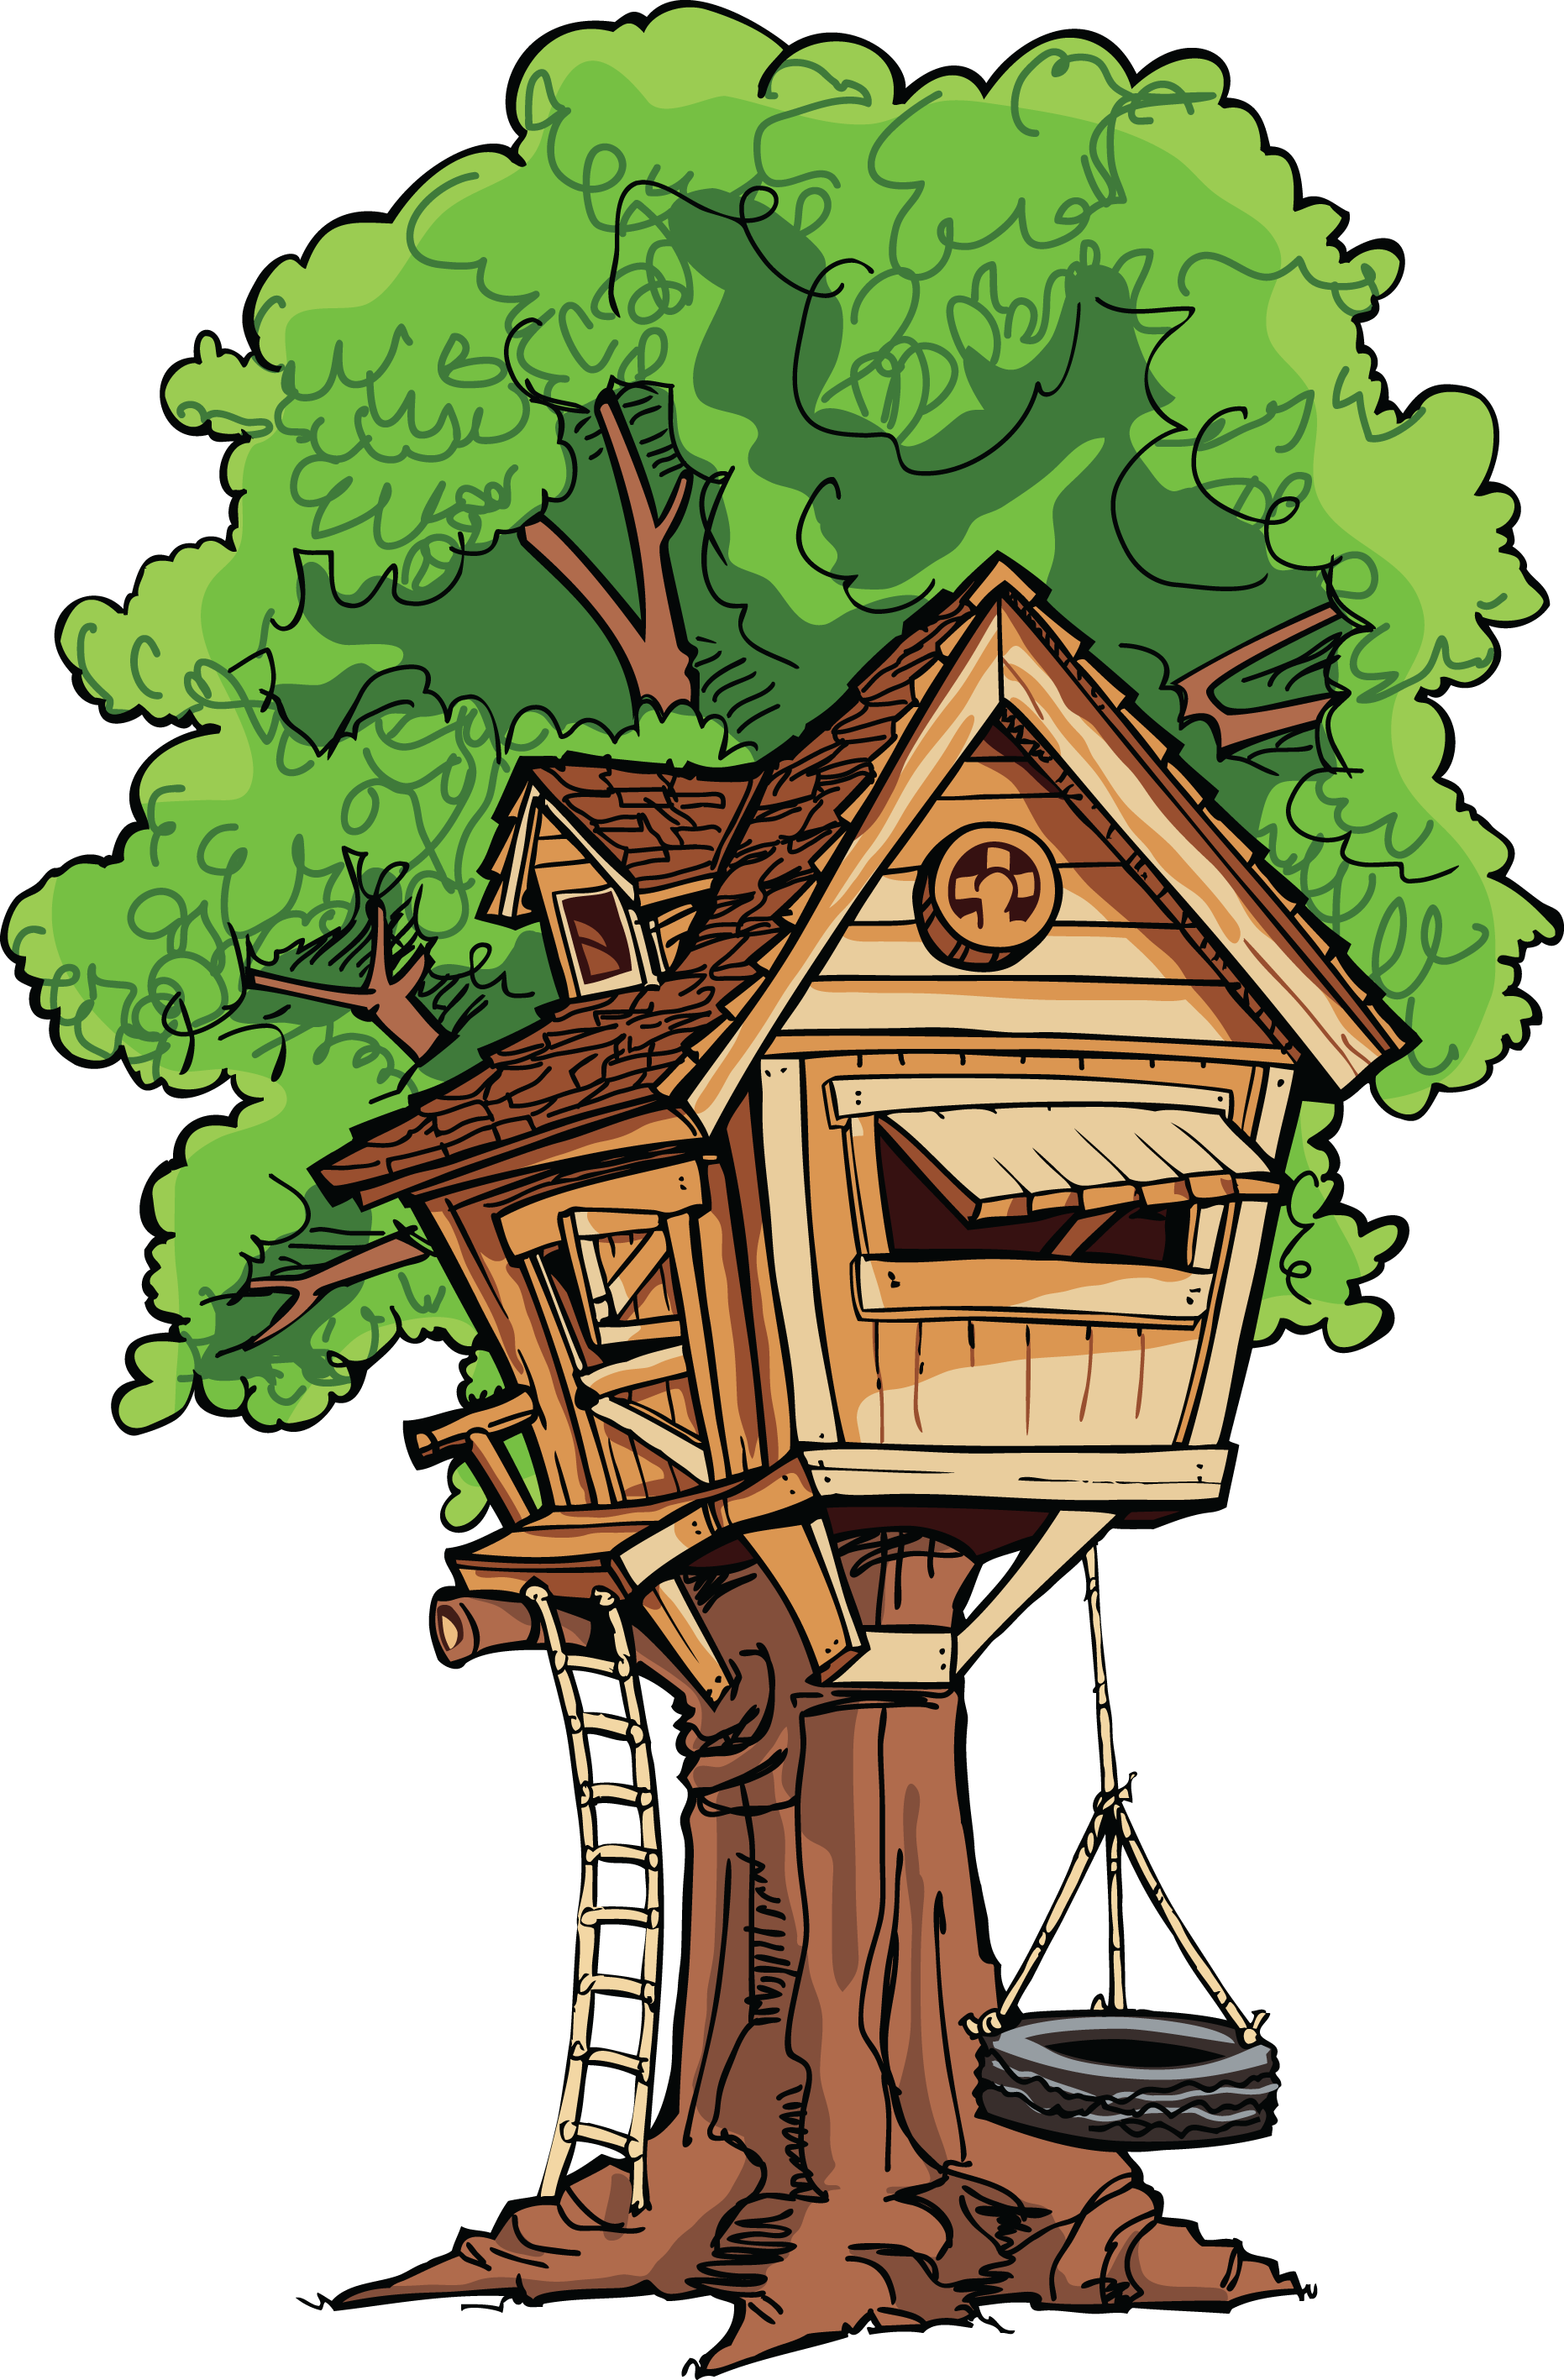 House on hill clipart image royalty free download Tree House Clip Art | When you go into the creative world you have ... image royalty free download